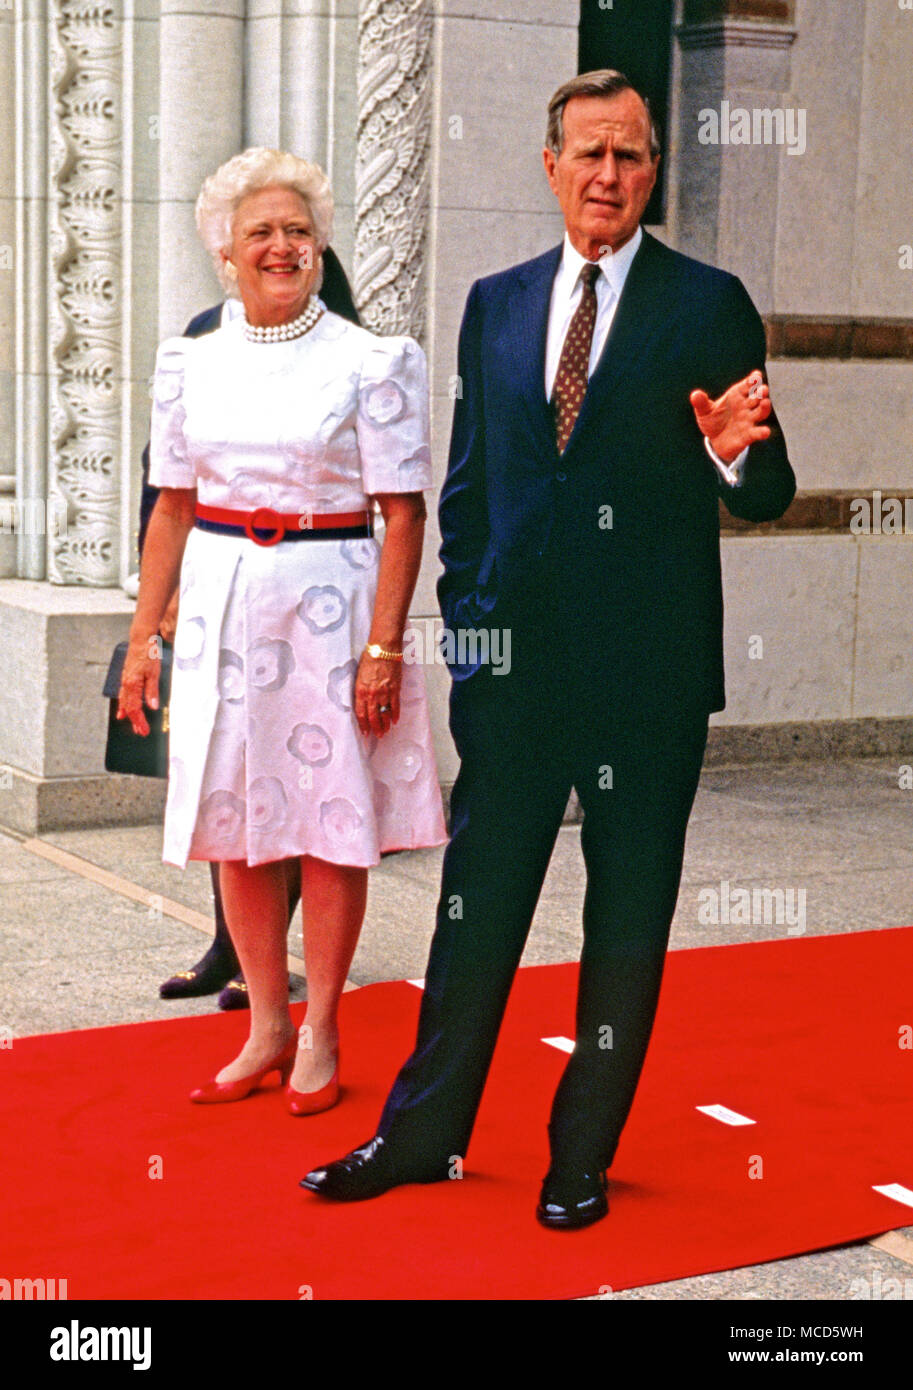 United States President George H W Bush And First Lady Barbara Bush Await The Arrival Of World Leaders To The  Economic Summit Of Industrialized Nation